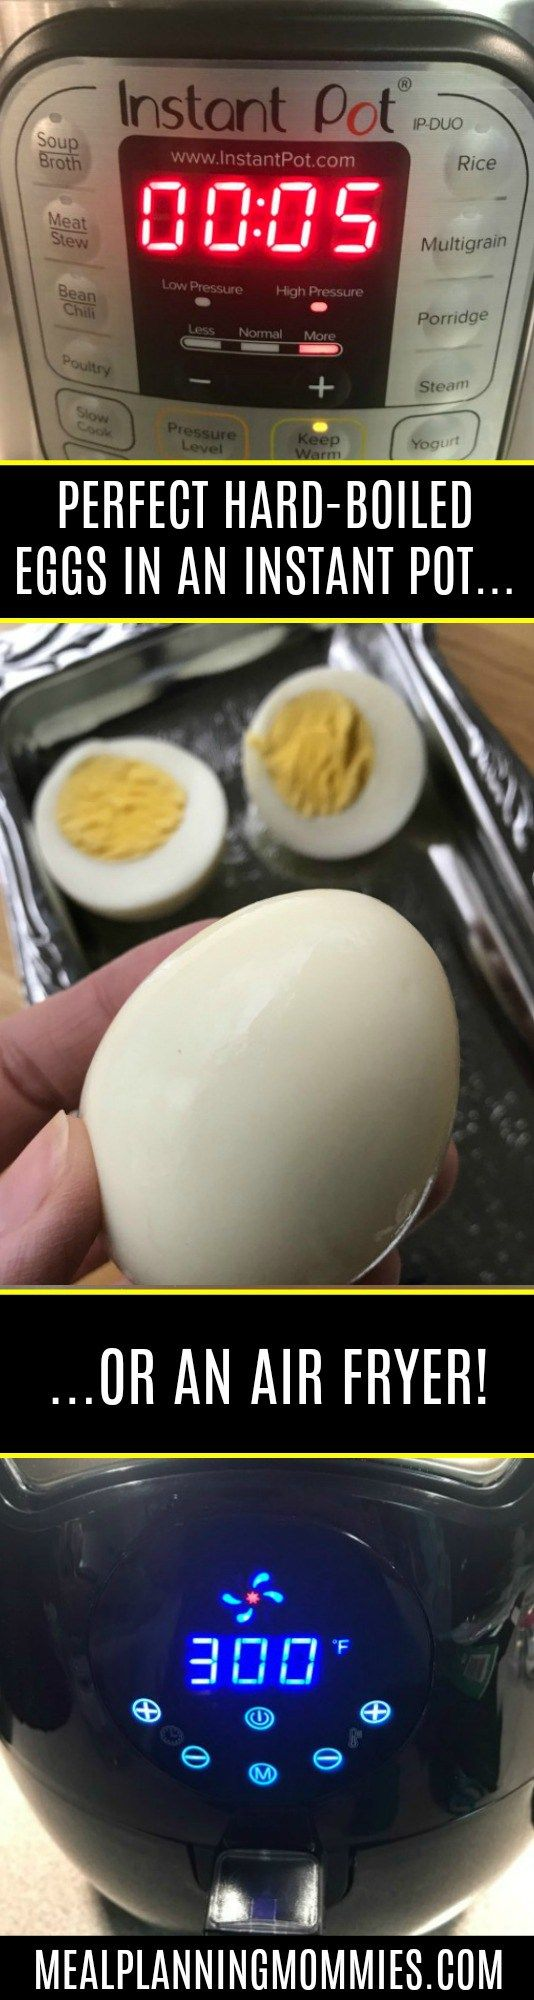 Instructions for how to hard-boil eggs in an instant pot and an air fryer. In 15 minutes you can cook perfect hard-boiled eggs that are super easy to peel.